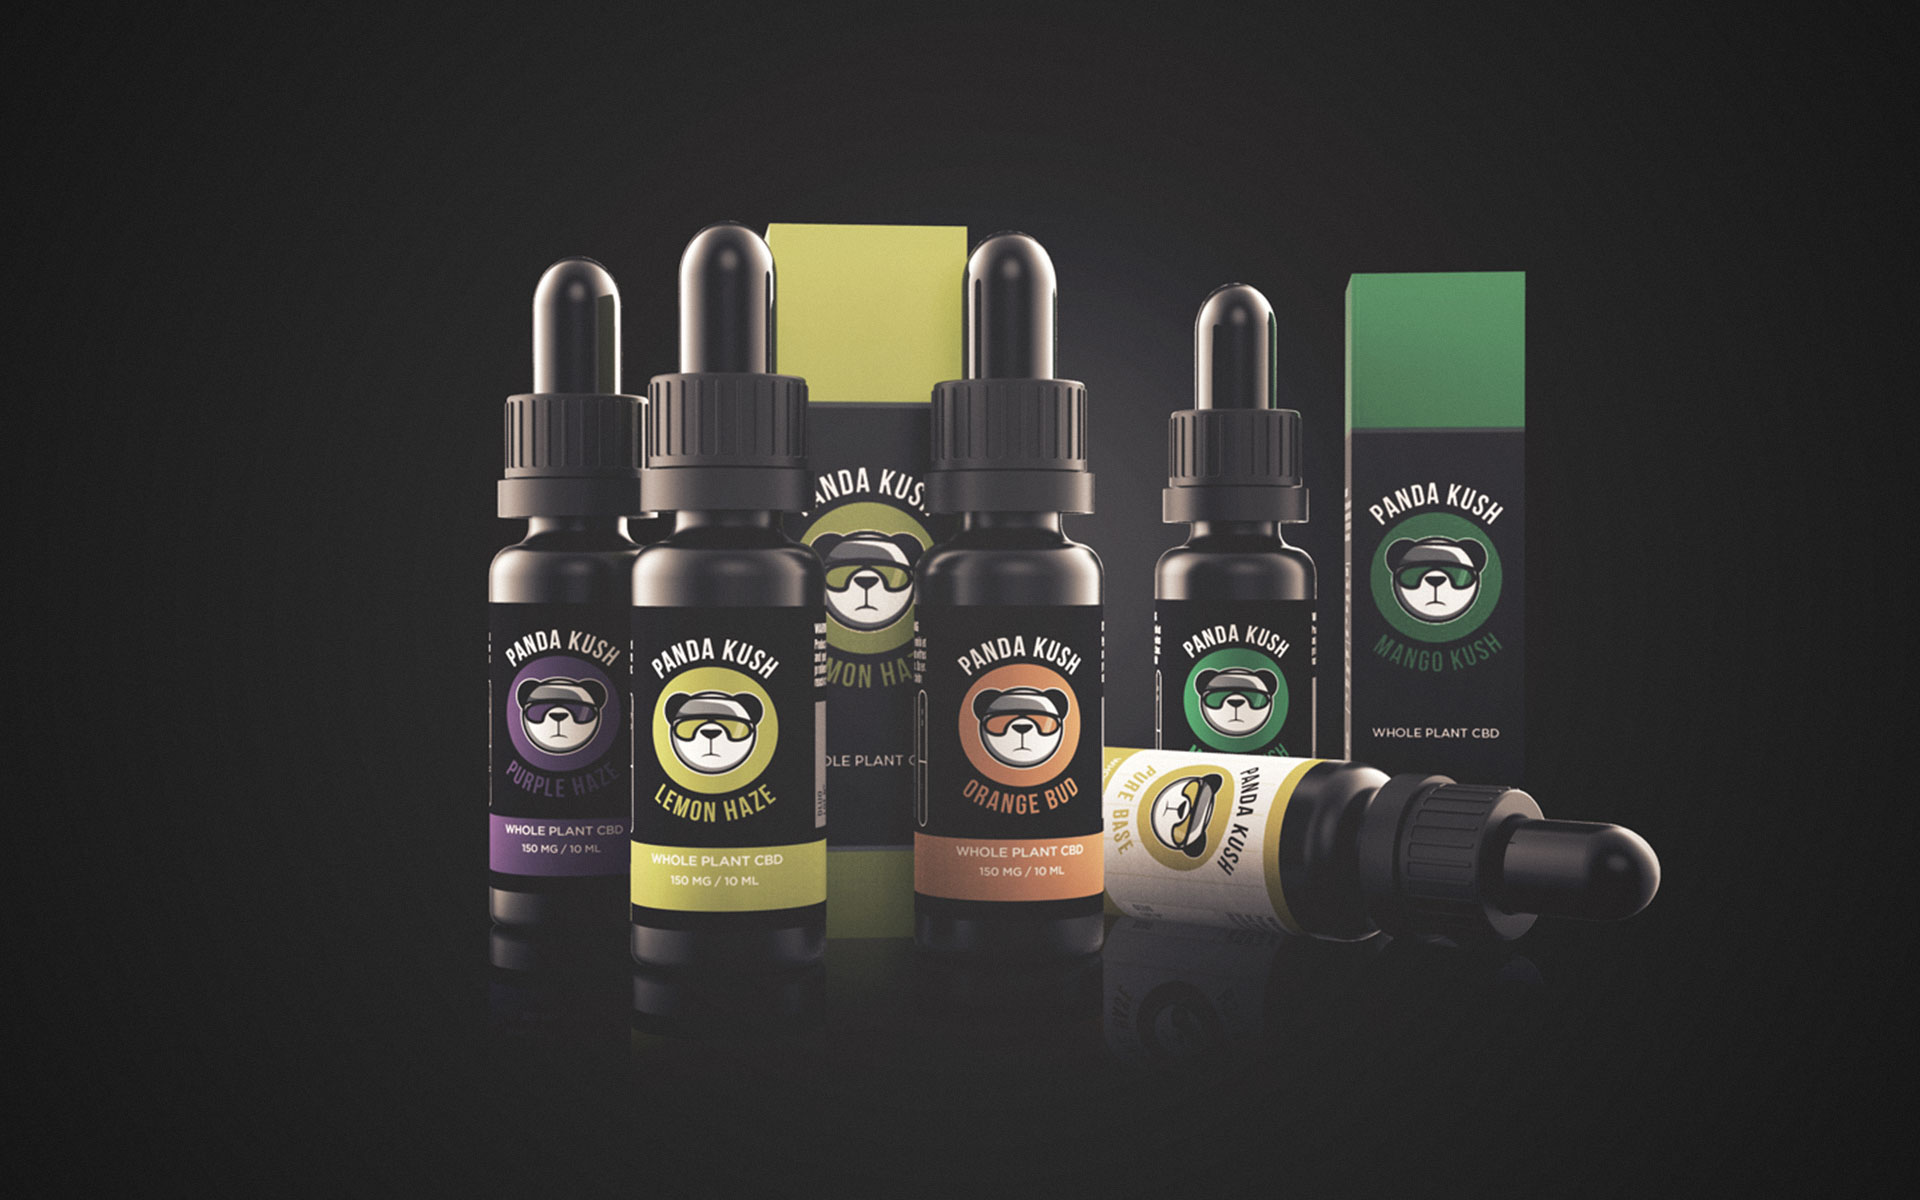 All panda kush CBD eliquid flavors and 2 boxes